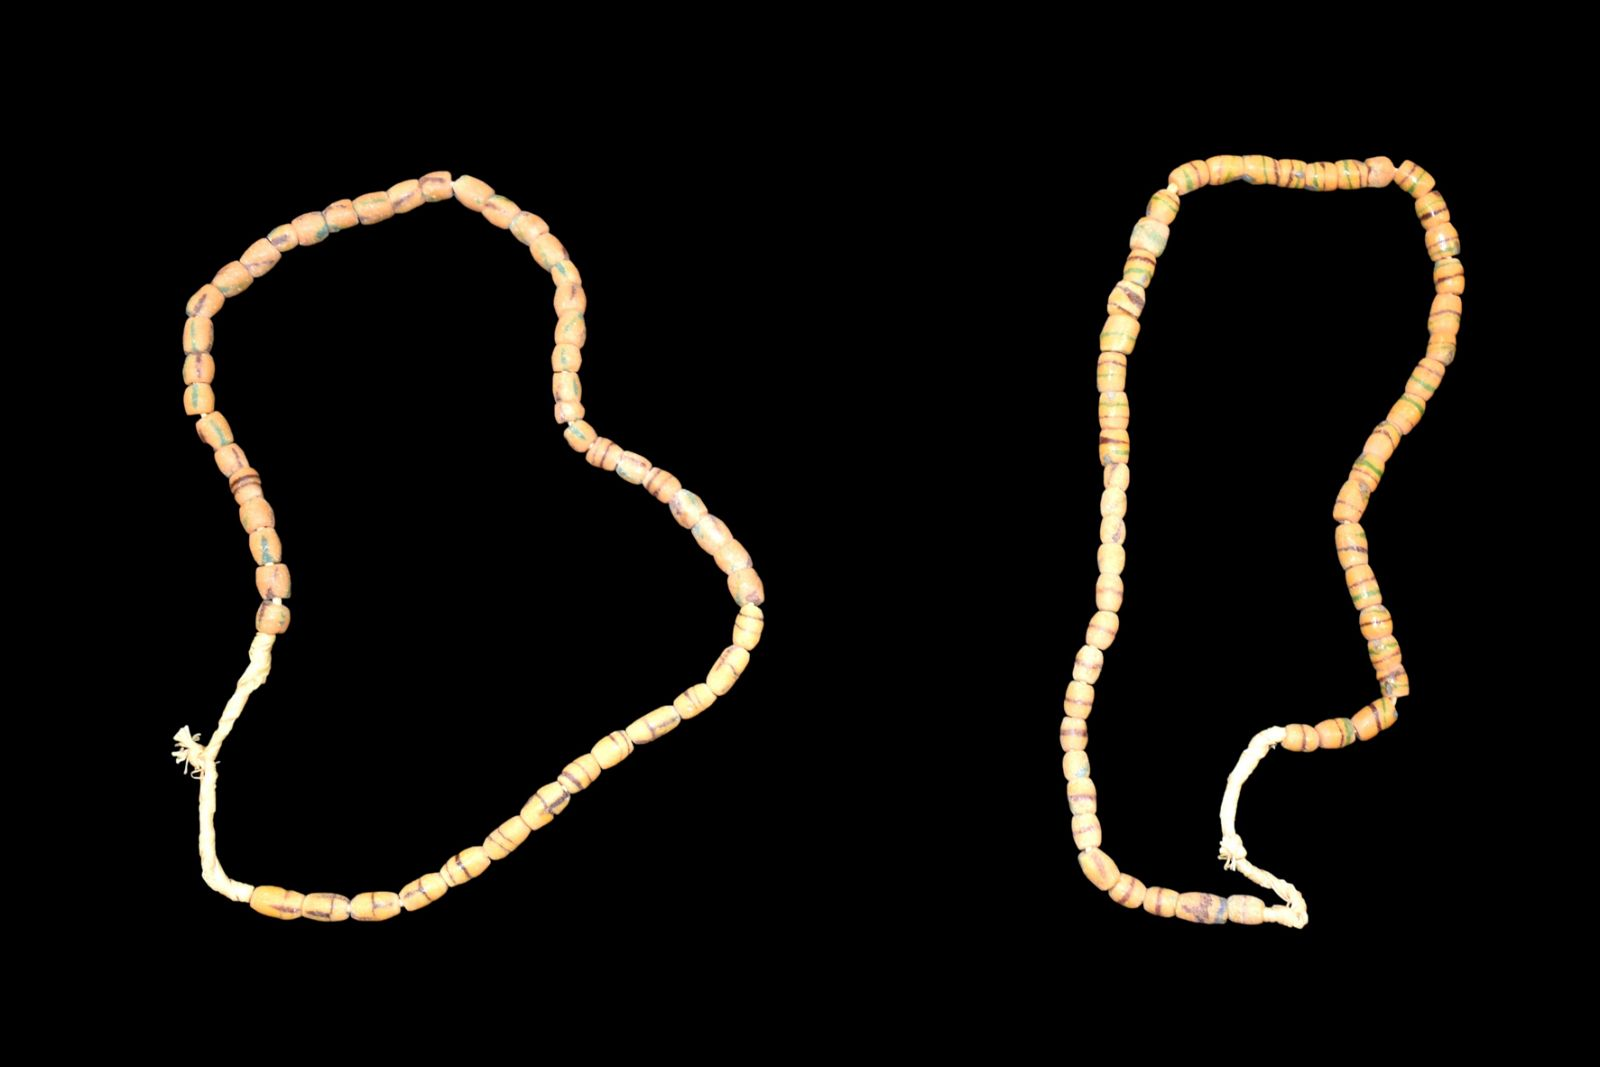 2 Strands of African Sandcast Beads